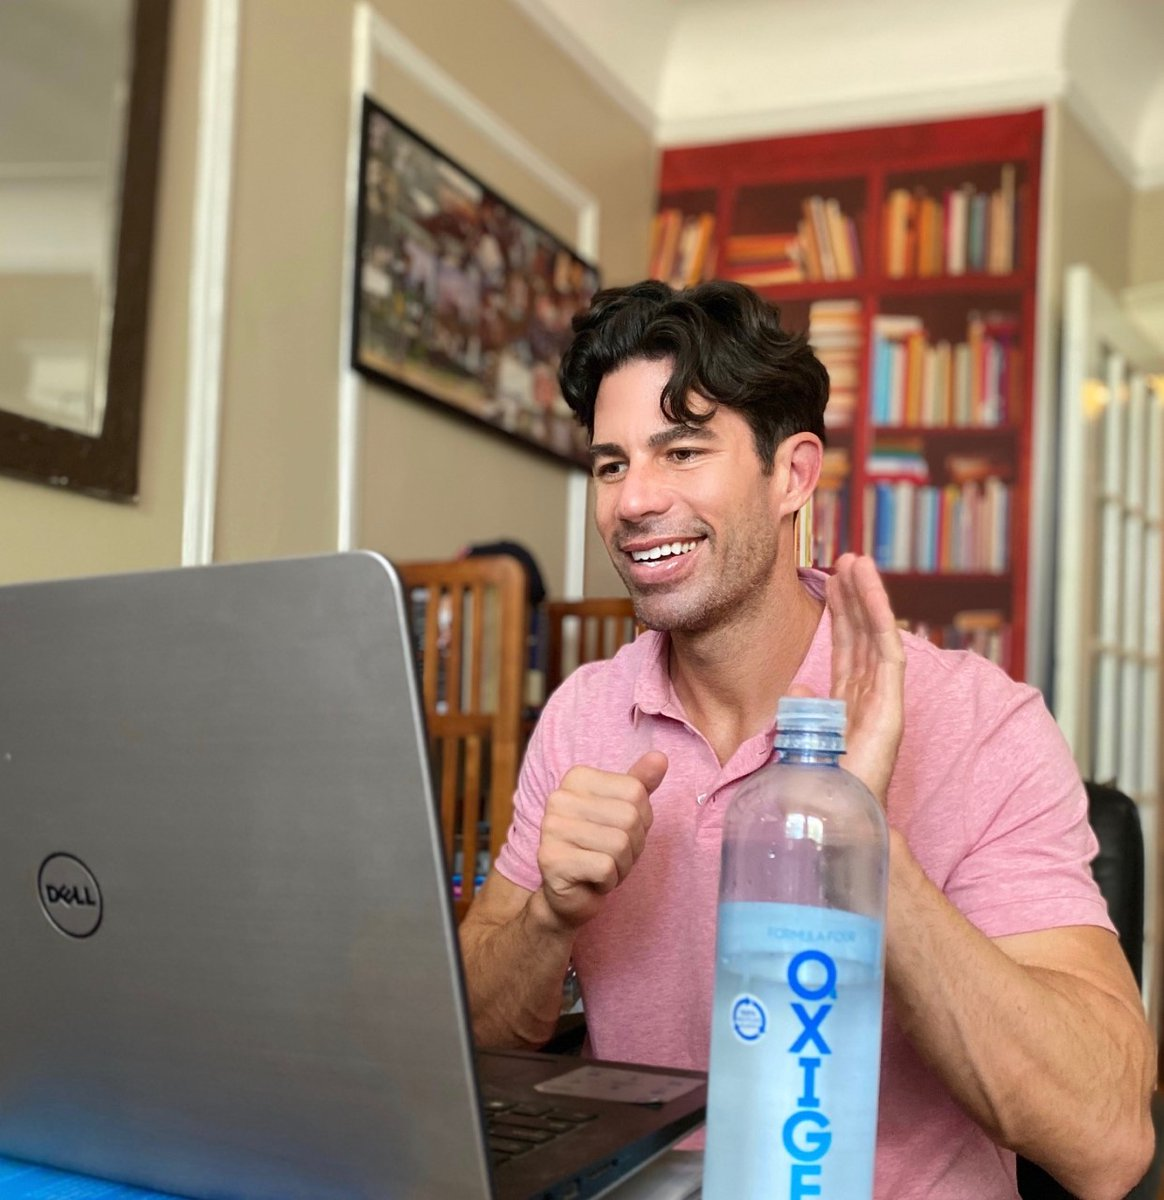 @NicholasFerroni, educator and activist, credits his ability to thrive during this challenging time to meditation, training, and staying hydrated with OXIGEN. #RecoverandRise #drinkOXIGEN